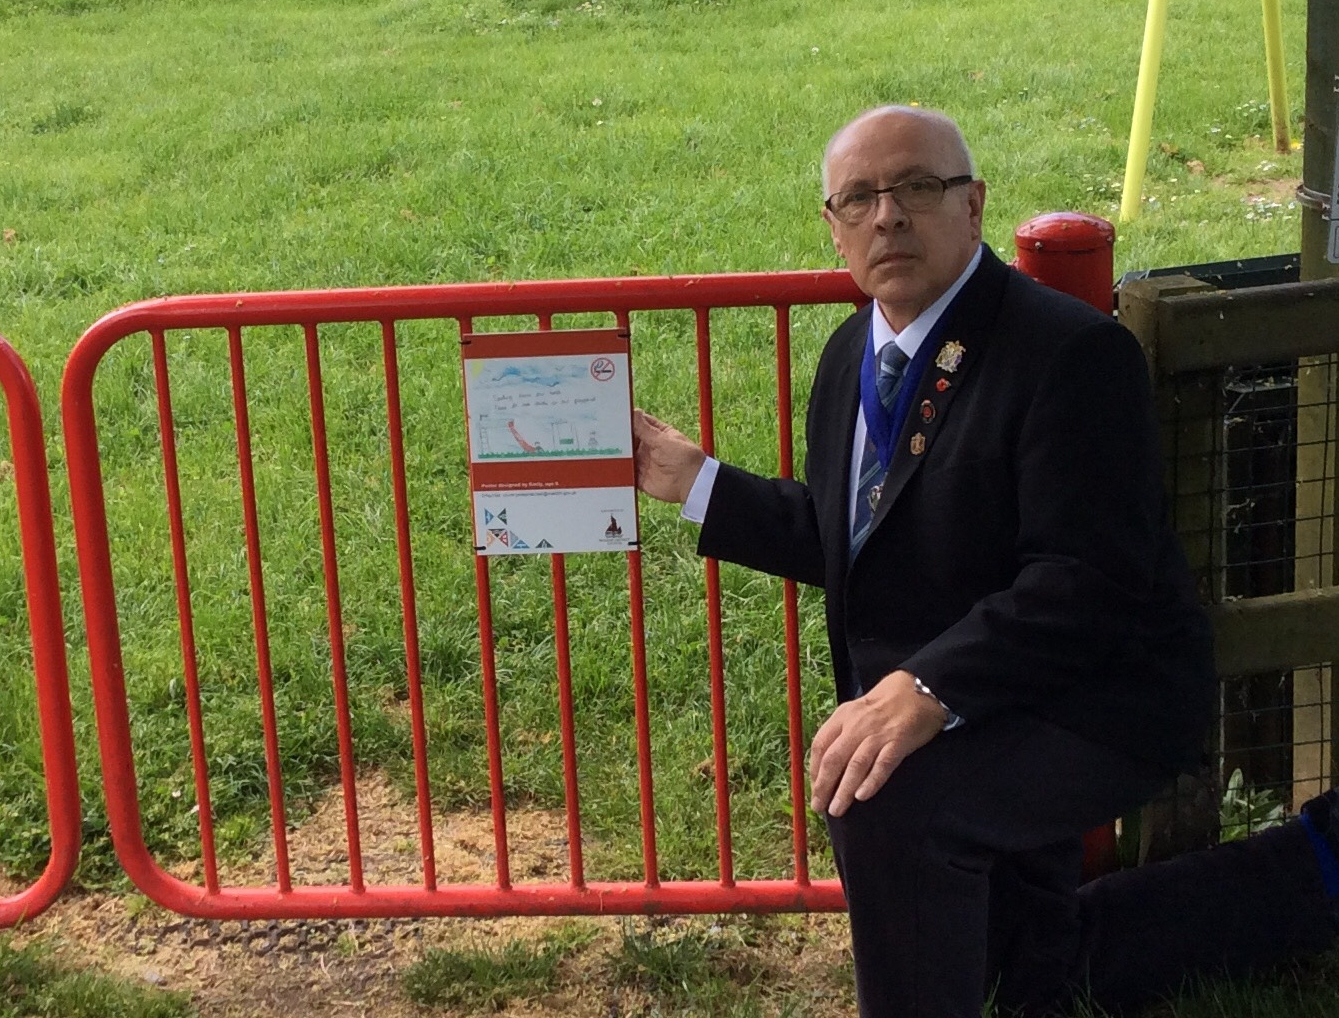 Cllr Pudney supporting no smoking in our park 2